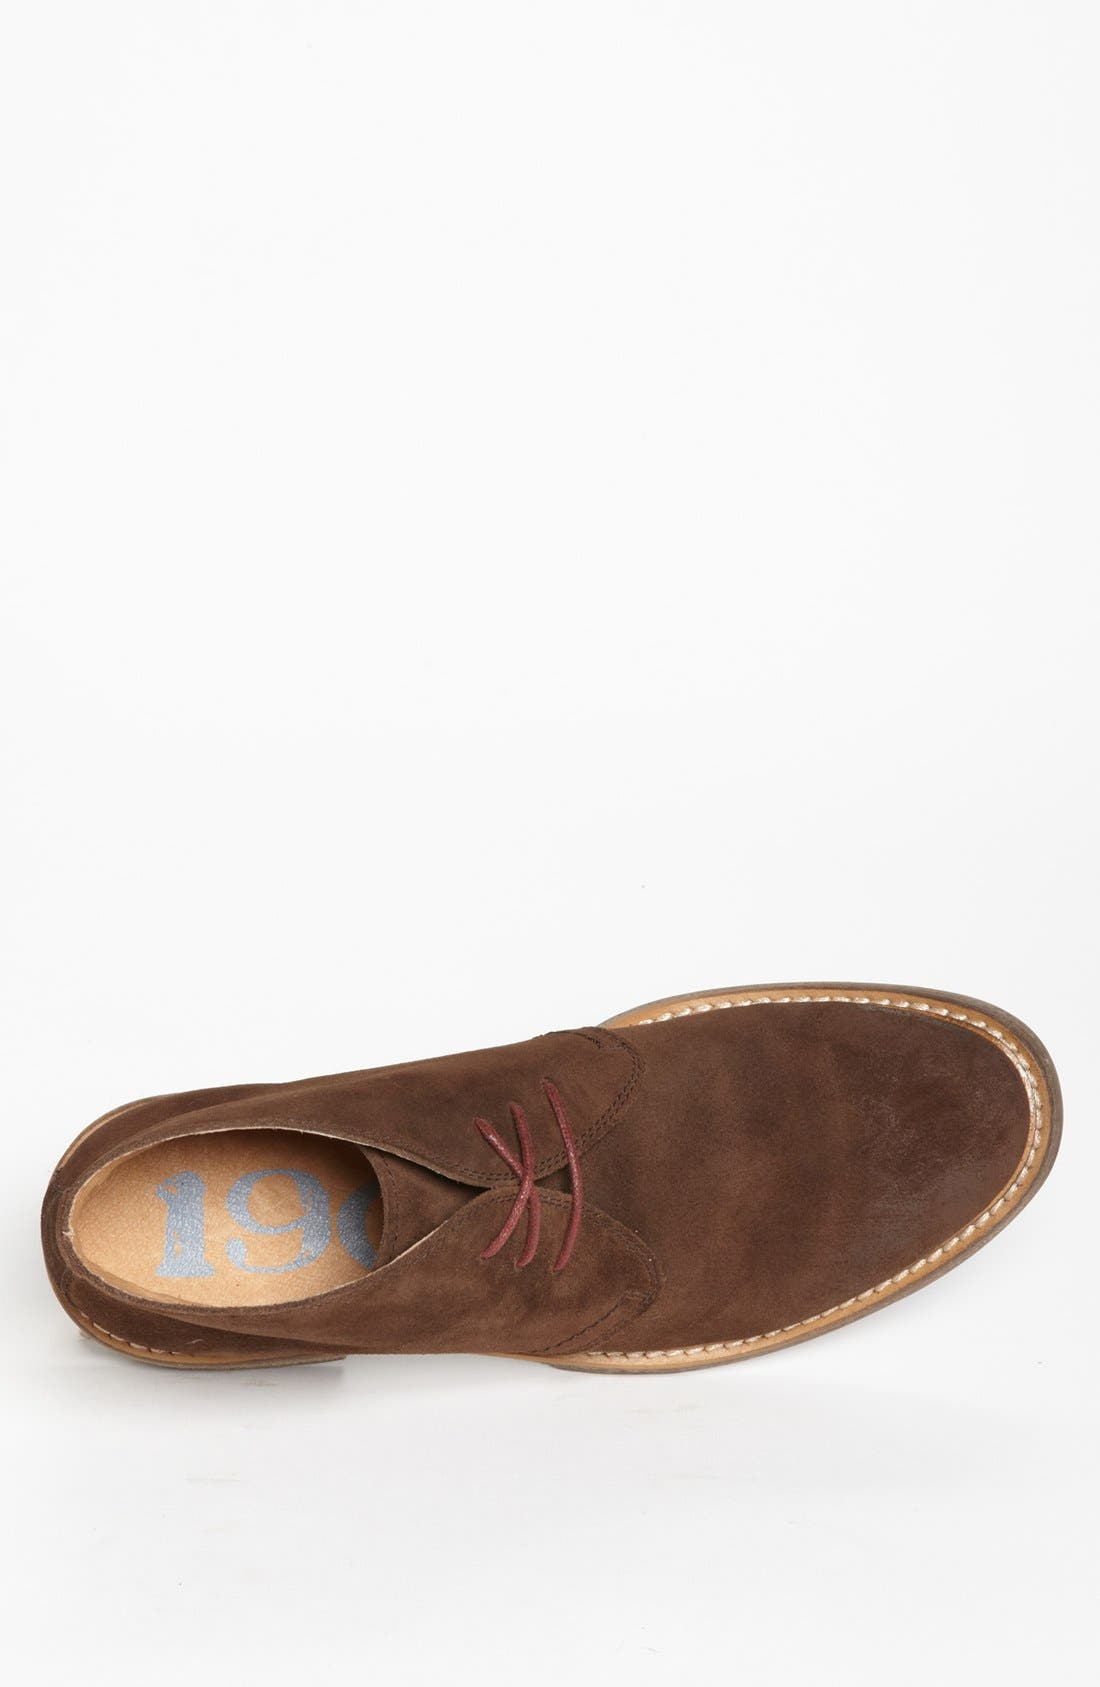 'Canyon' Chukka Boot,                             Alternate thumbnail 22, color,